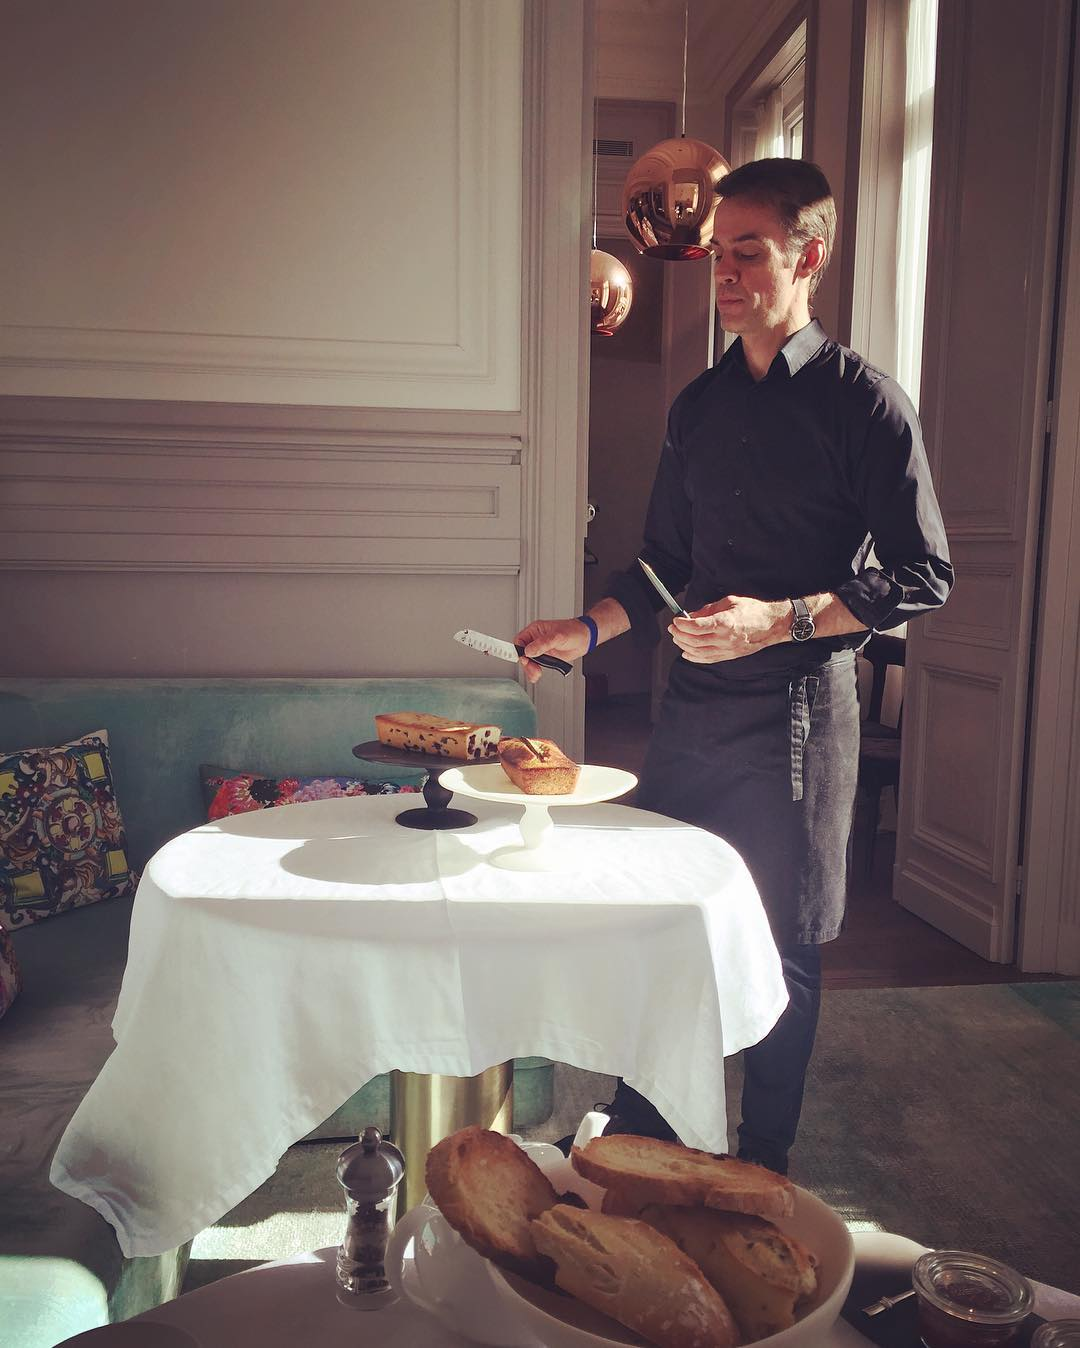 Tableware by Tina Frey at Yndo Hotel, Bordeaux - Pedestal Cake Stand